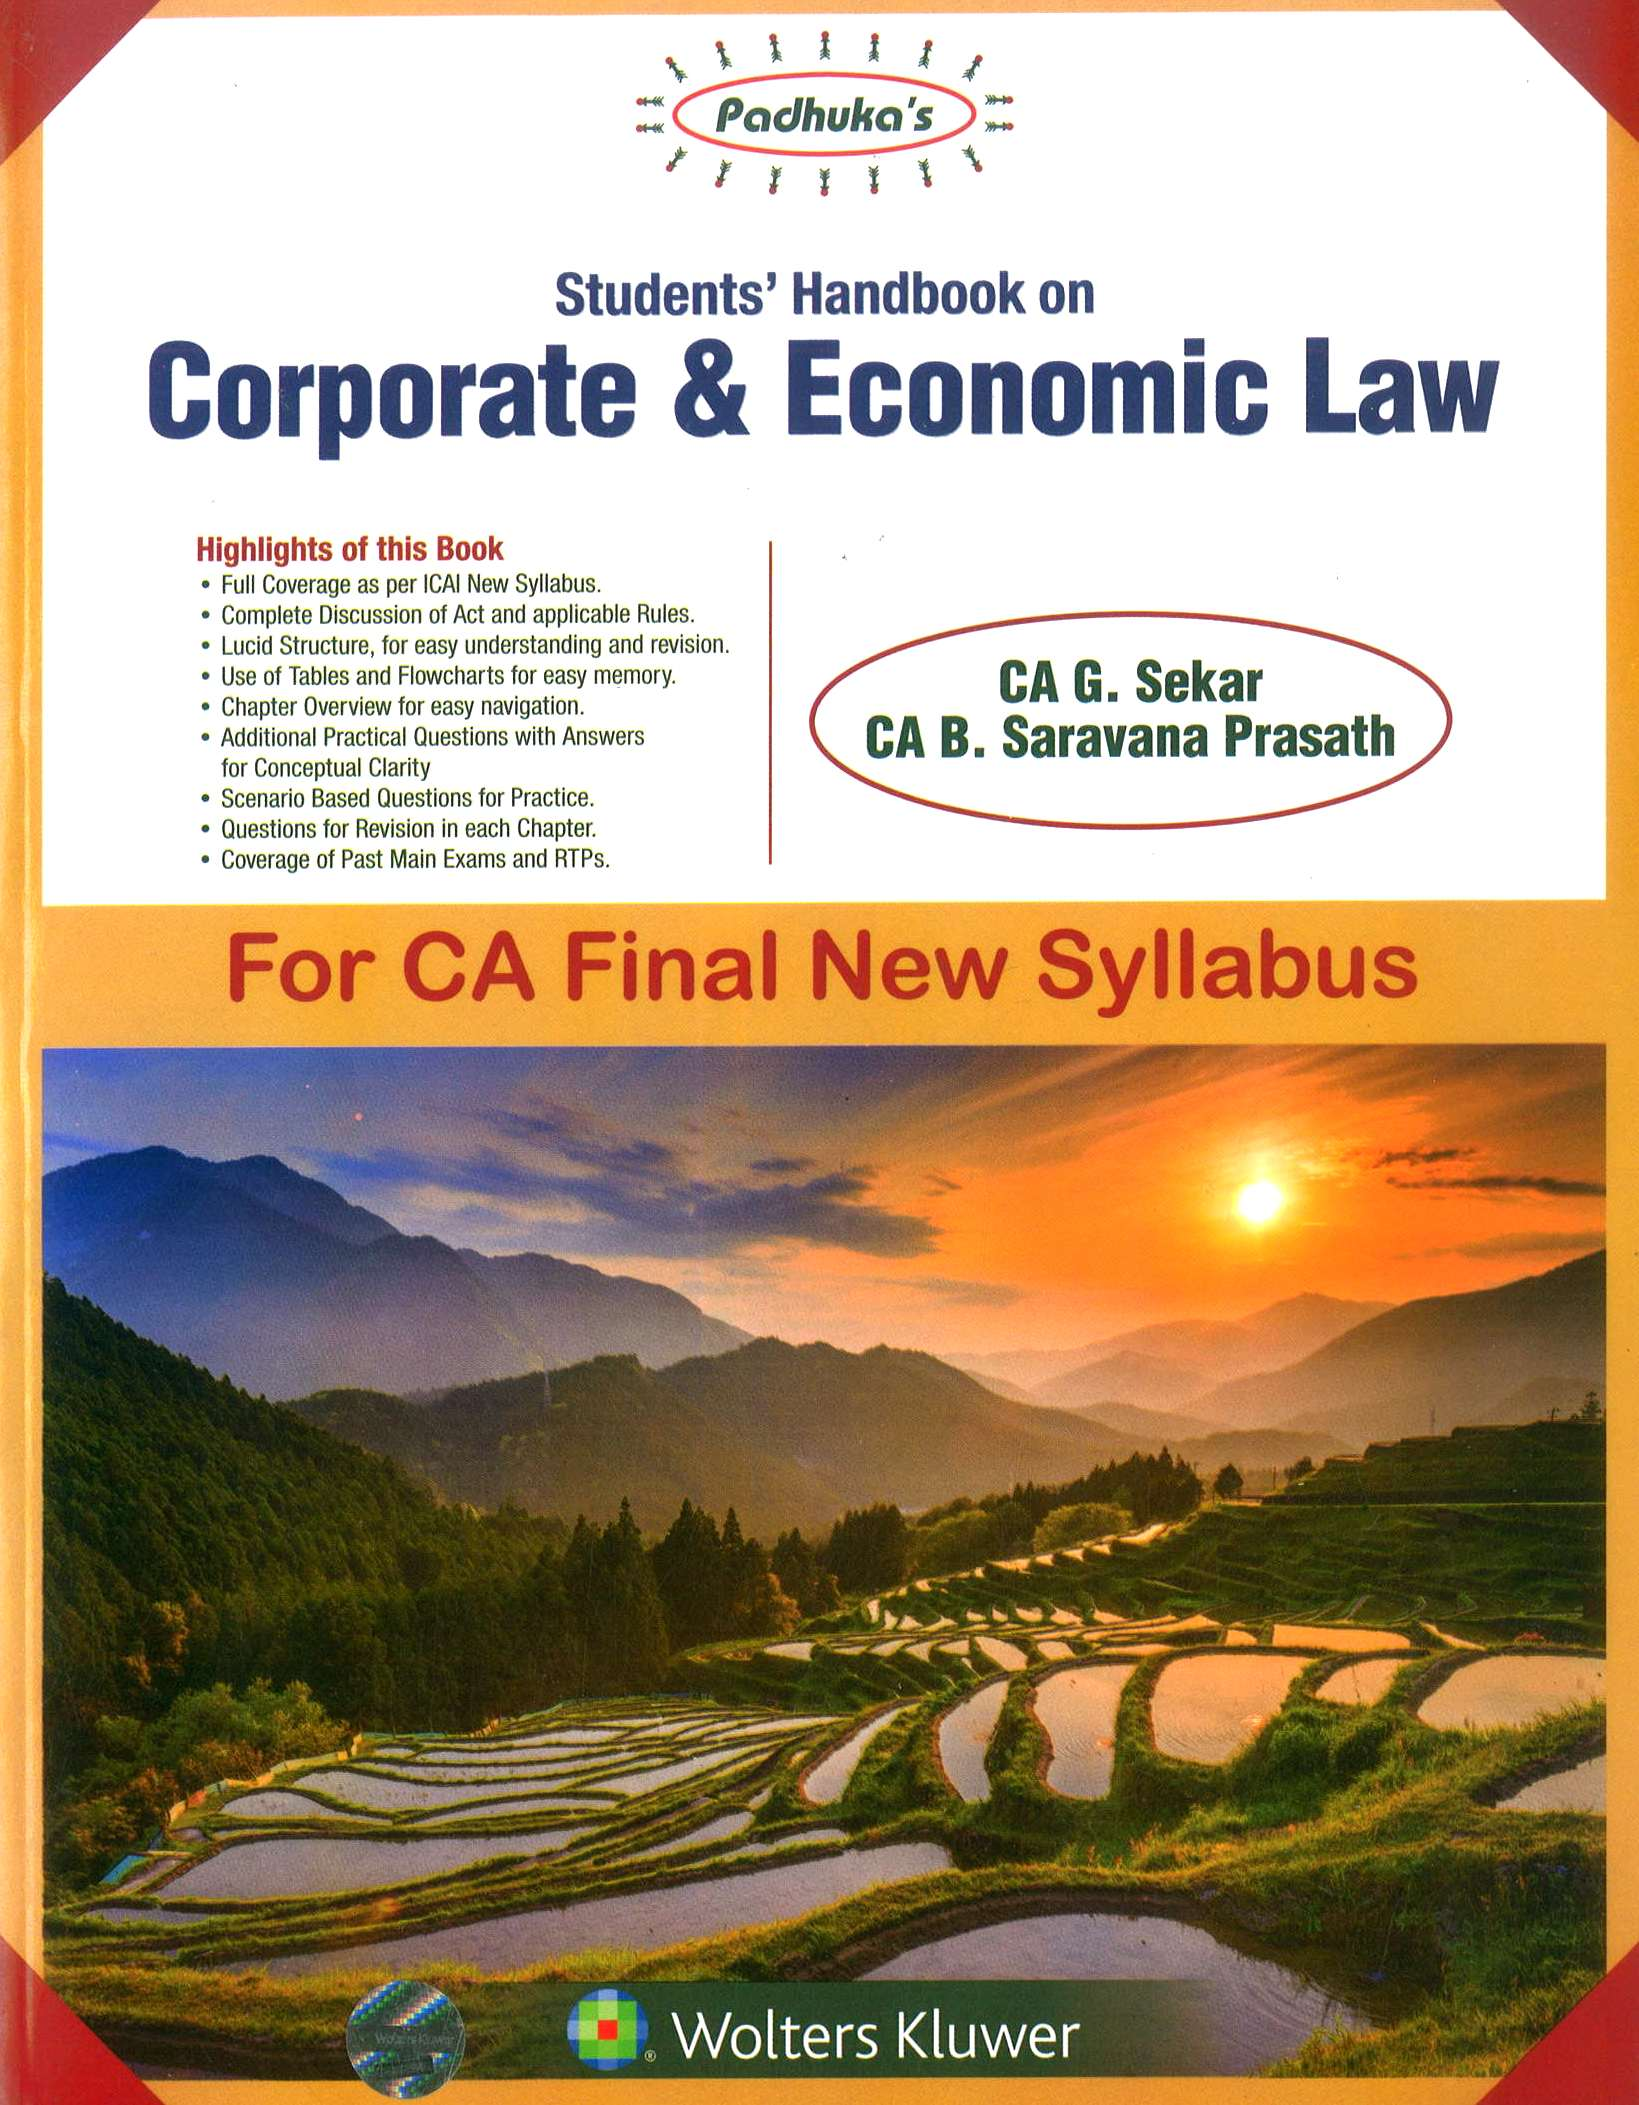 CCH Padhuka's Students' Handbook on Corporate & Economic Law For CA Final New Syllabus by CA G. Sekar CA B. Saravana Prasath Applicable for Nov 2018 Exam